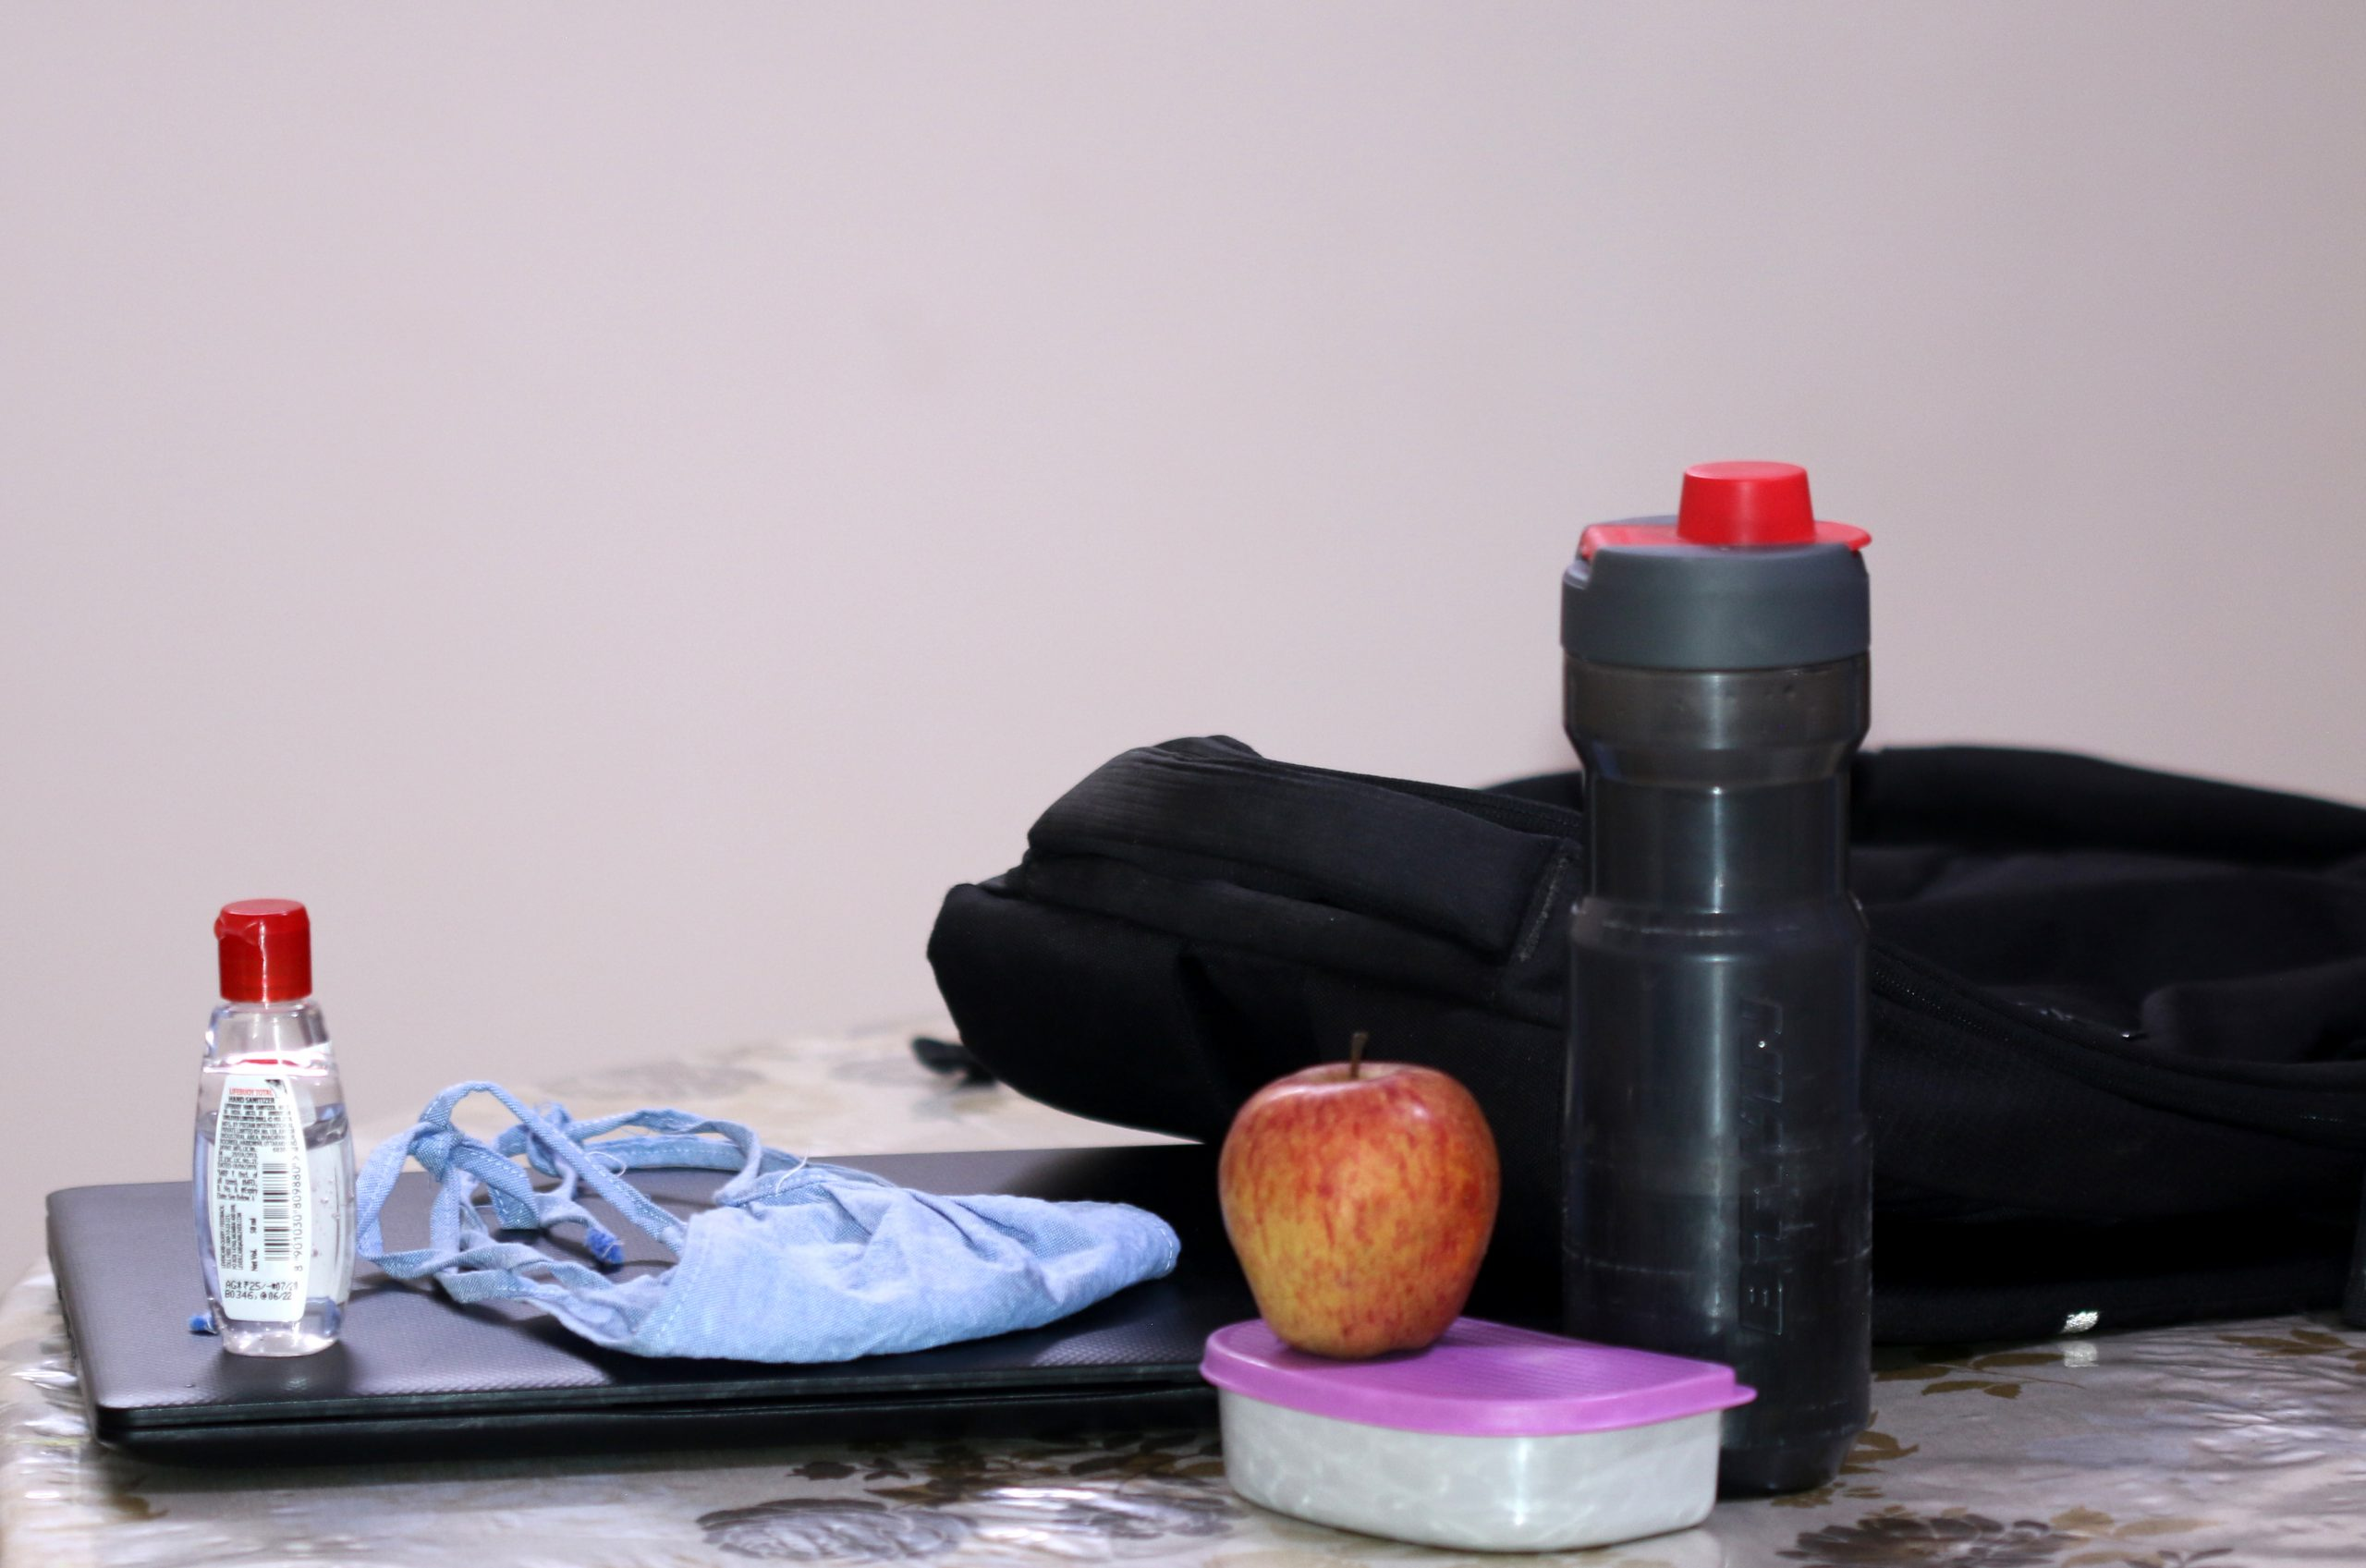 A student's accessories